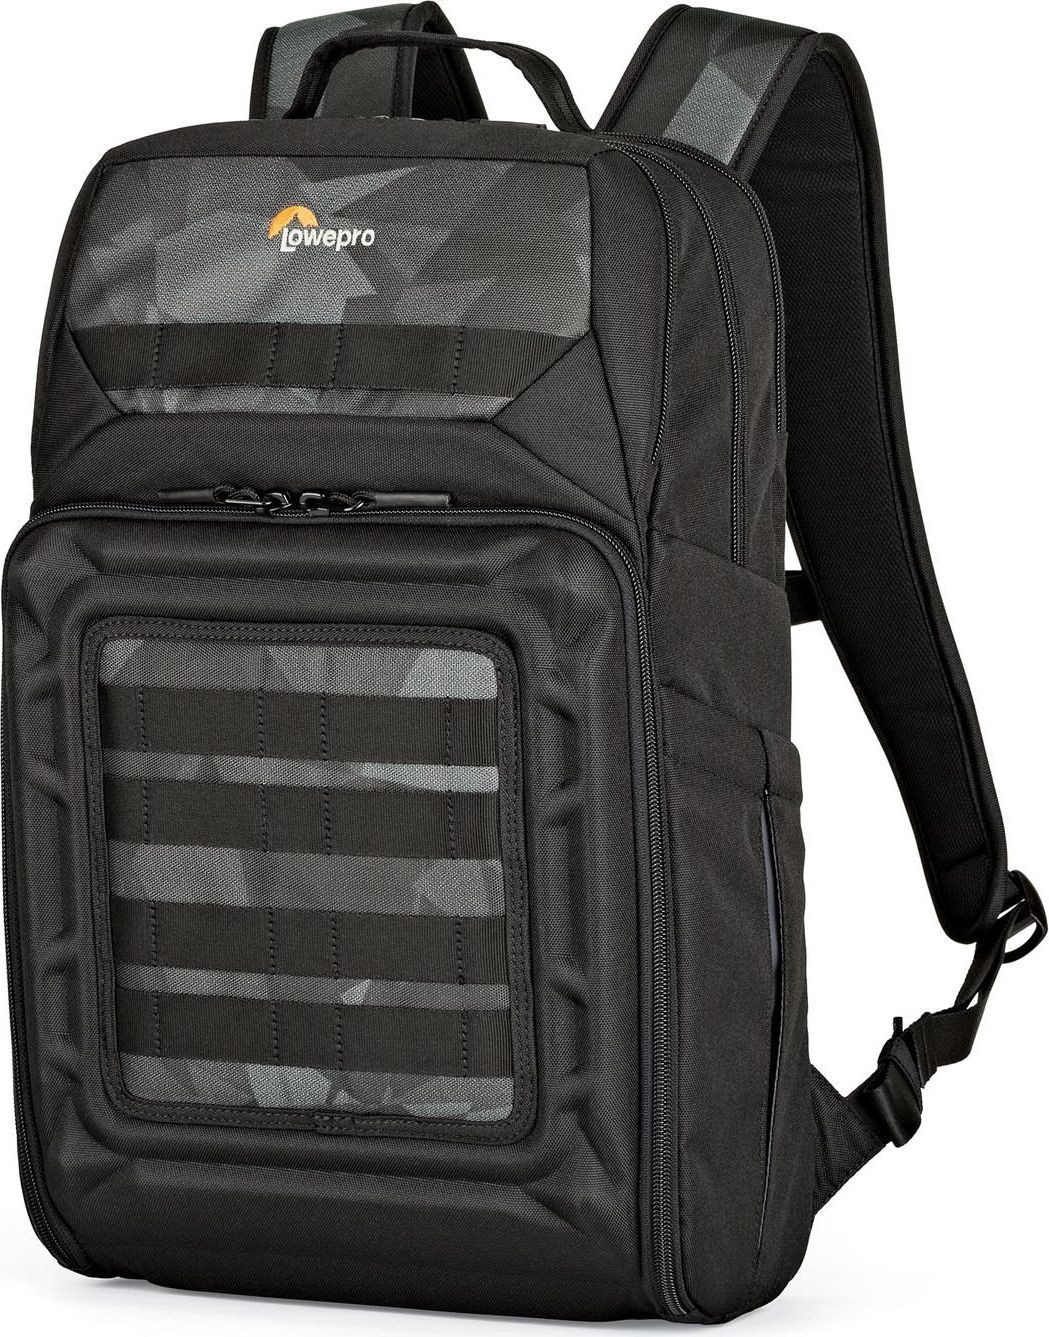 Рюкзак Lowepro DroneGuard BP 250, LP37099-PWW, черный daymen lowepro droneguard cs 300 для квадрокоптера